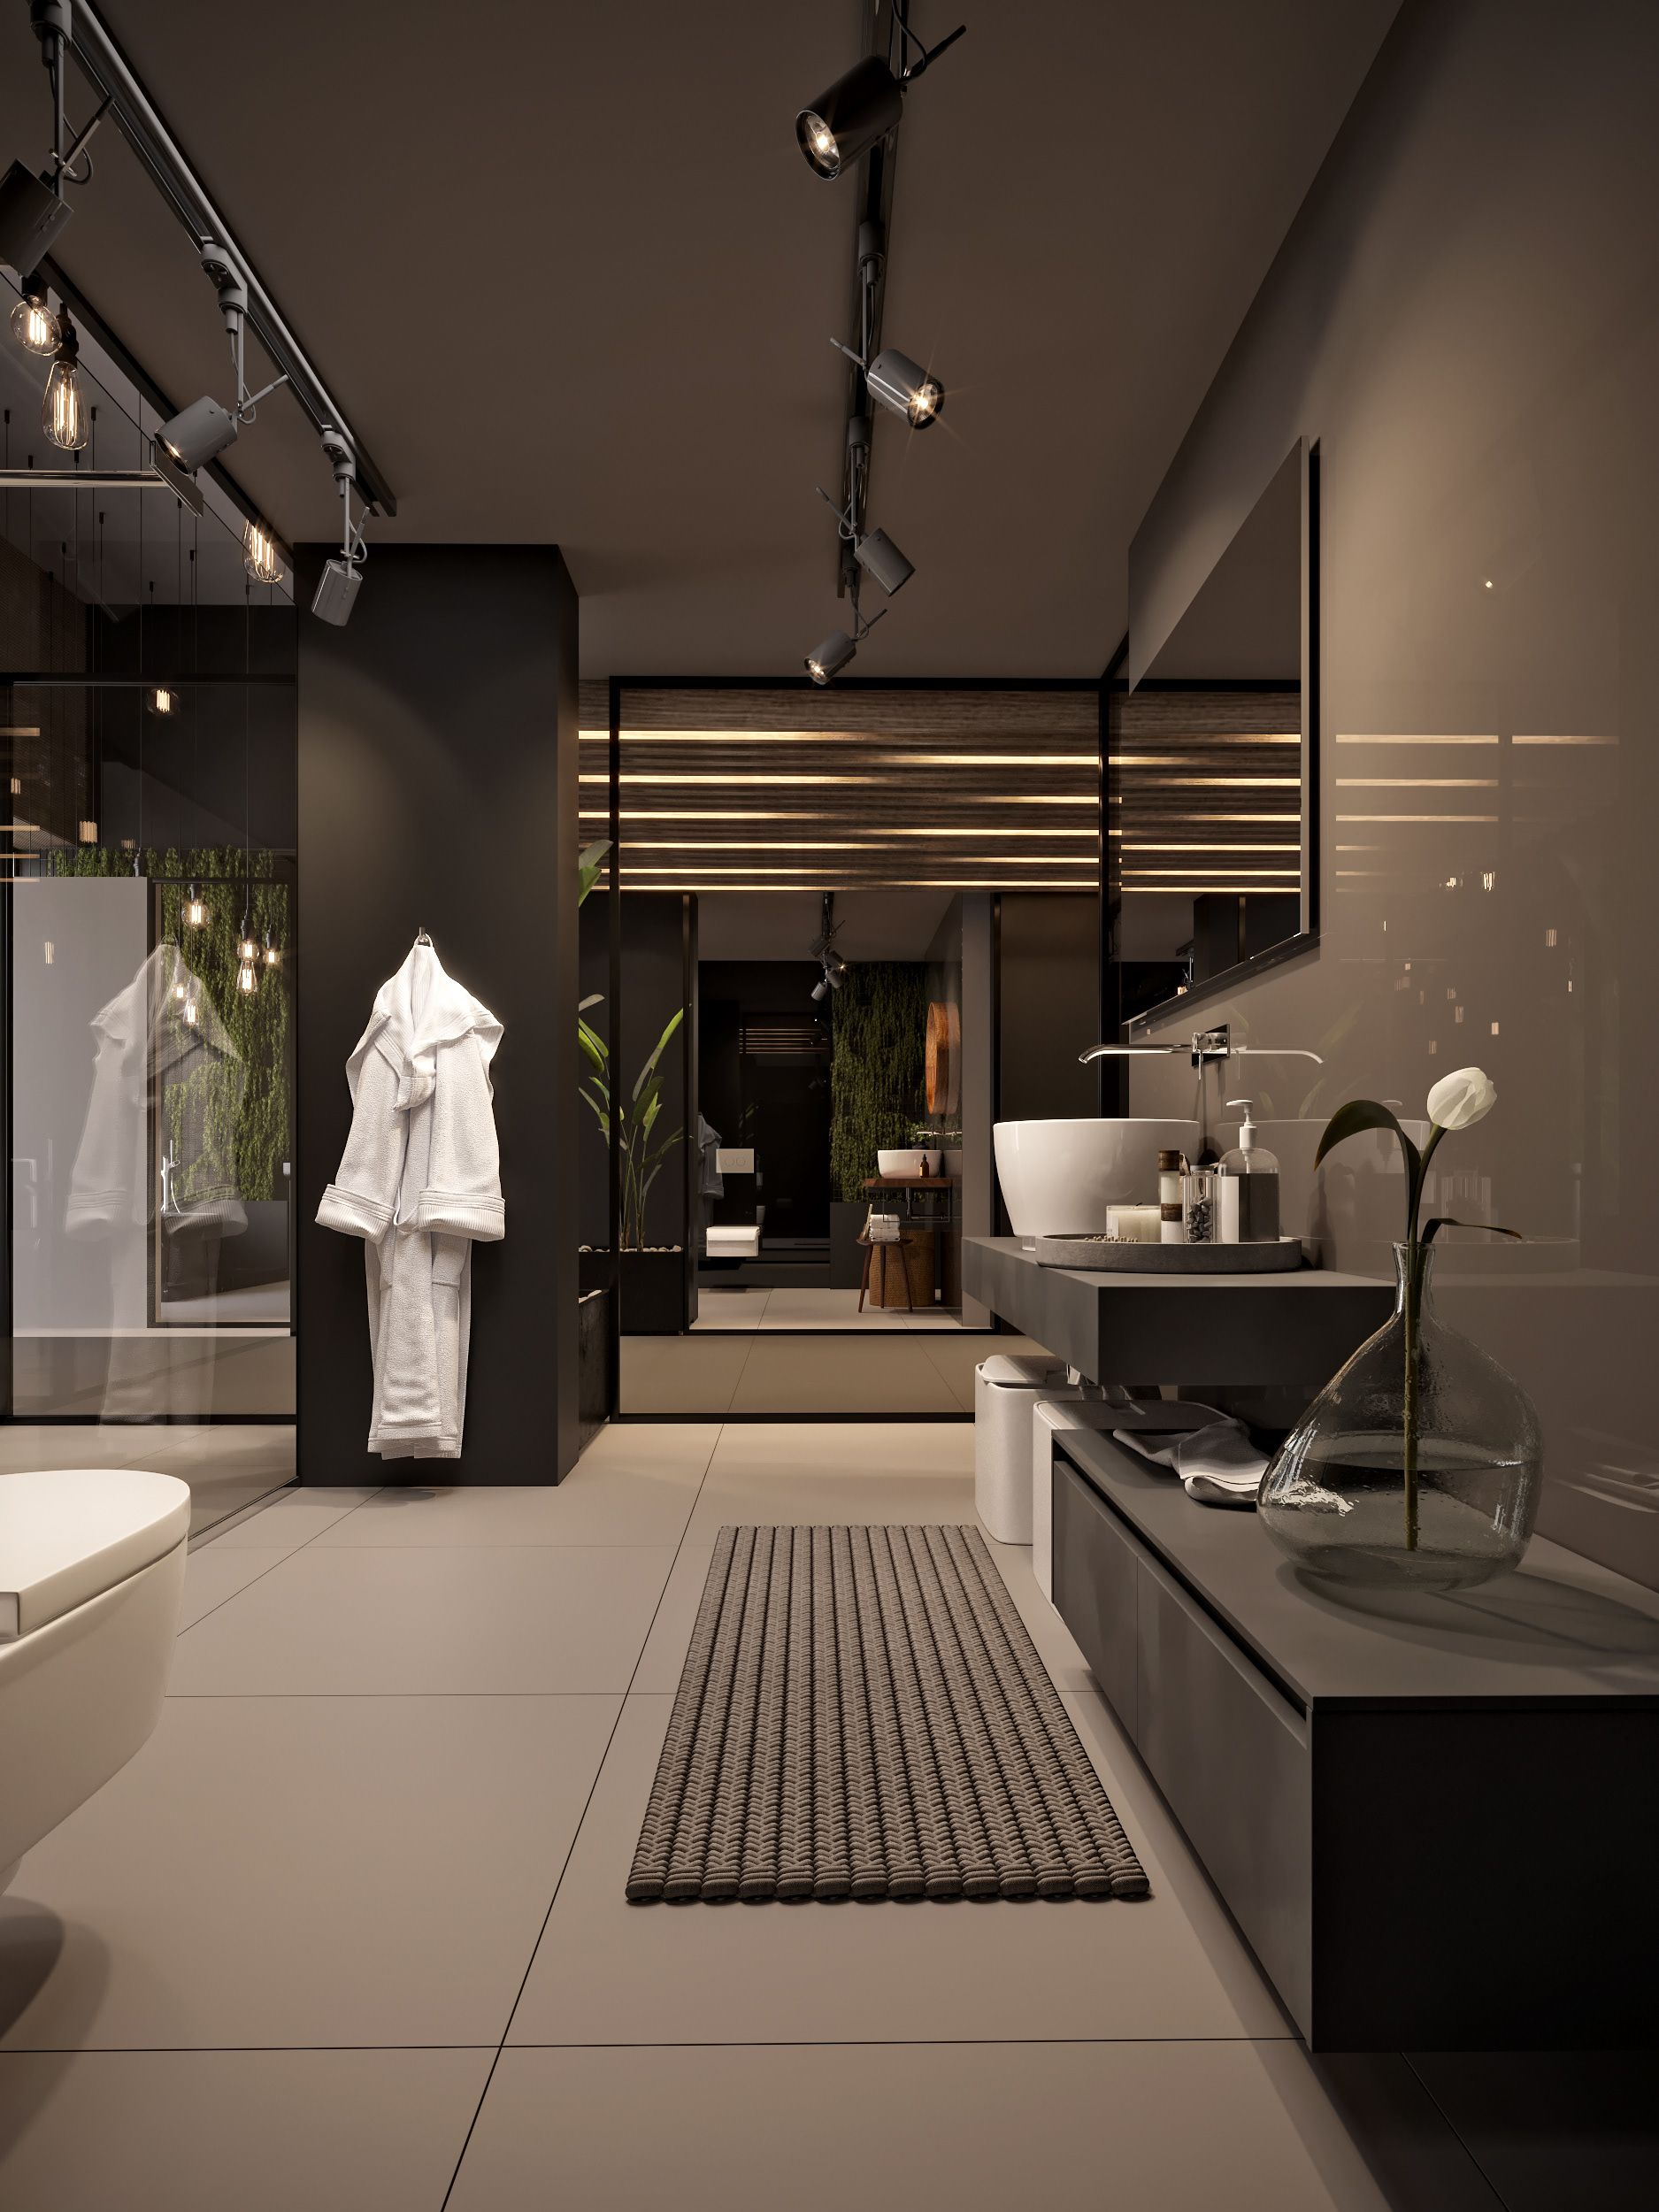 Bathroom Showroom Design By M Serhat Sezgin Interior Design